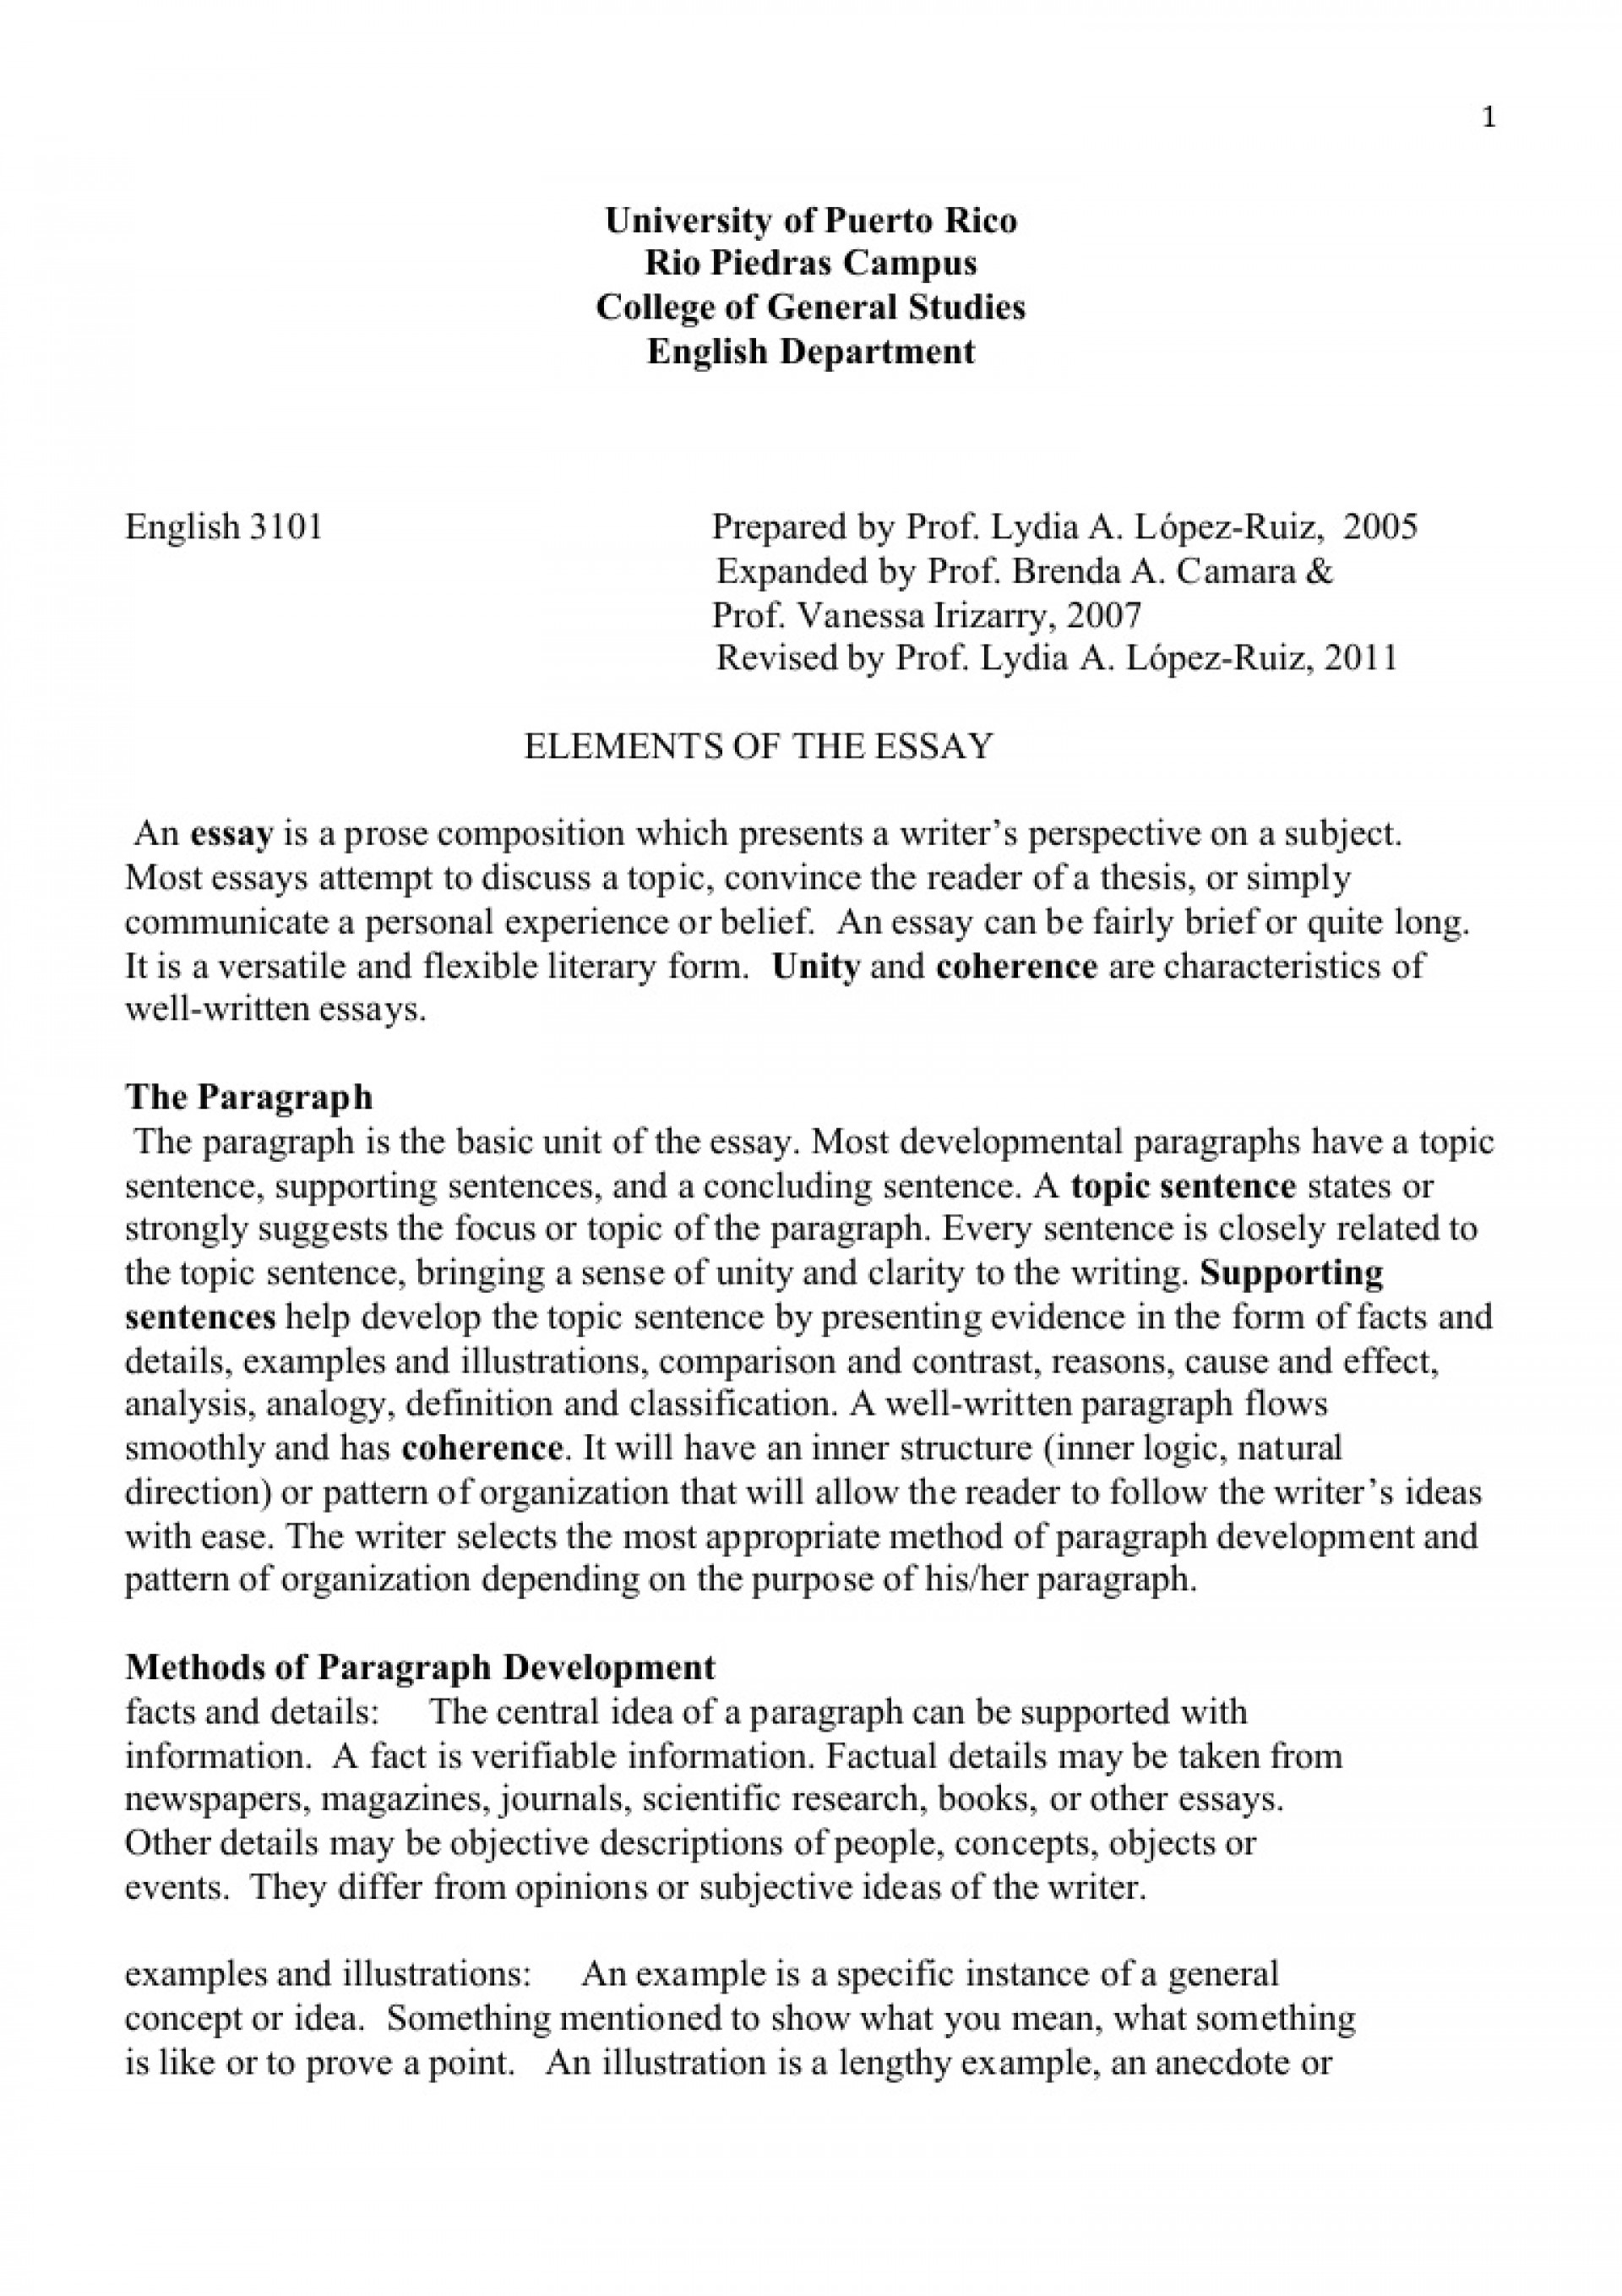 015 Health Essay Ll Vi Elementsoftheessay Phpapp01 Thumbnail Singular Topics For High School Students Titles Writing In Telugu 1920